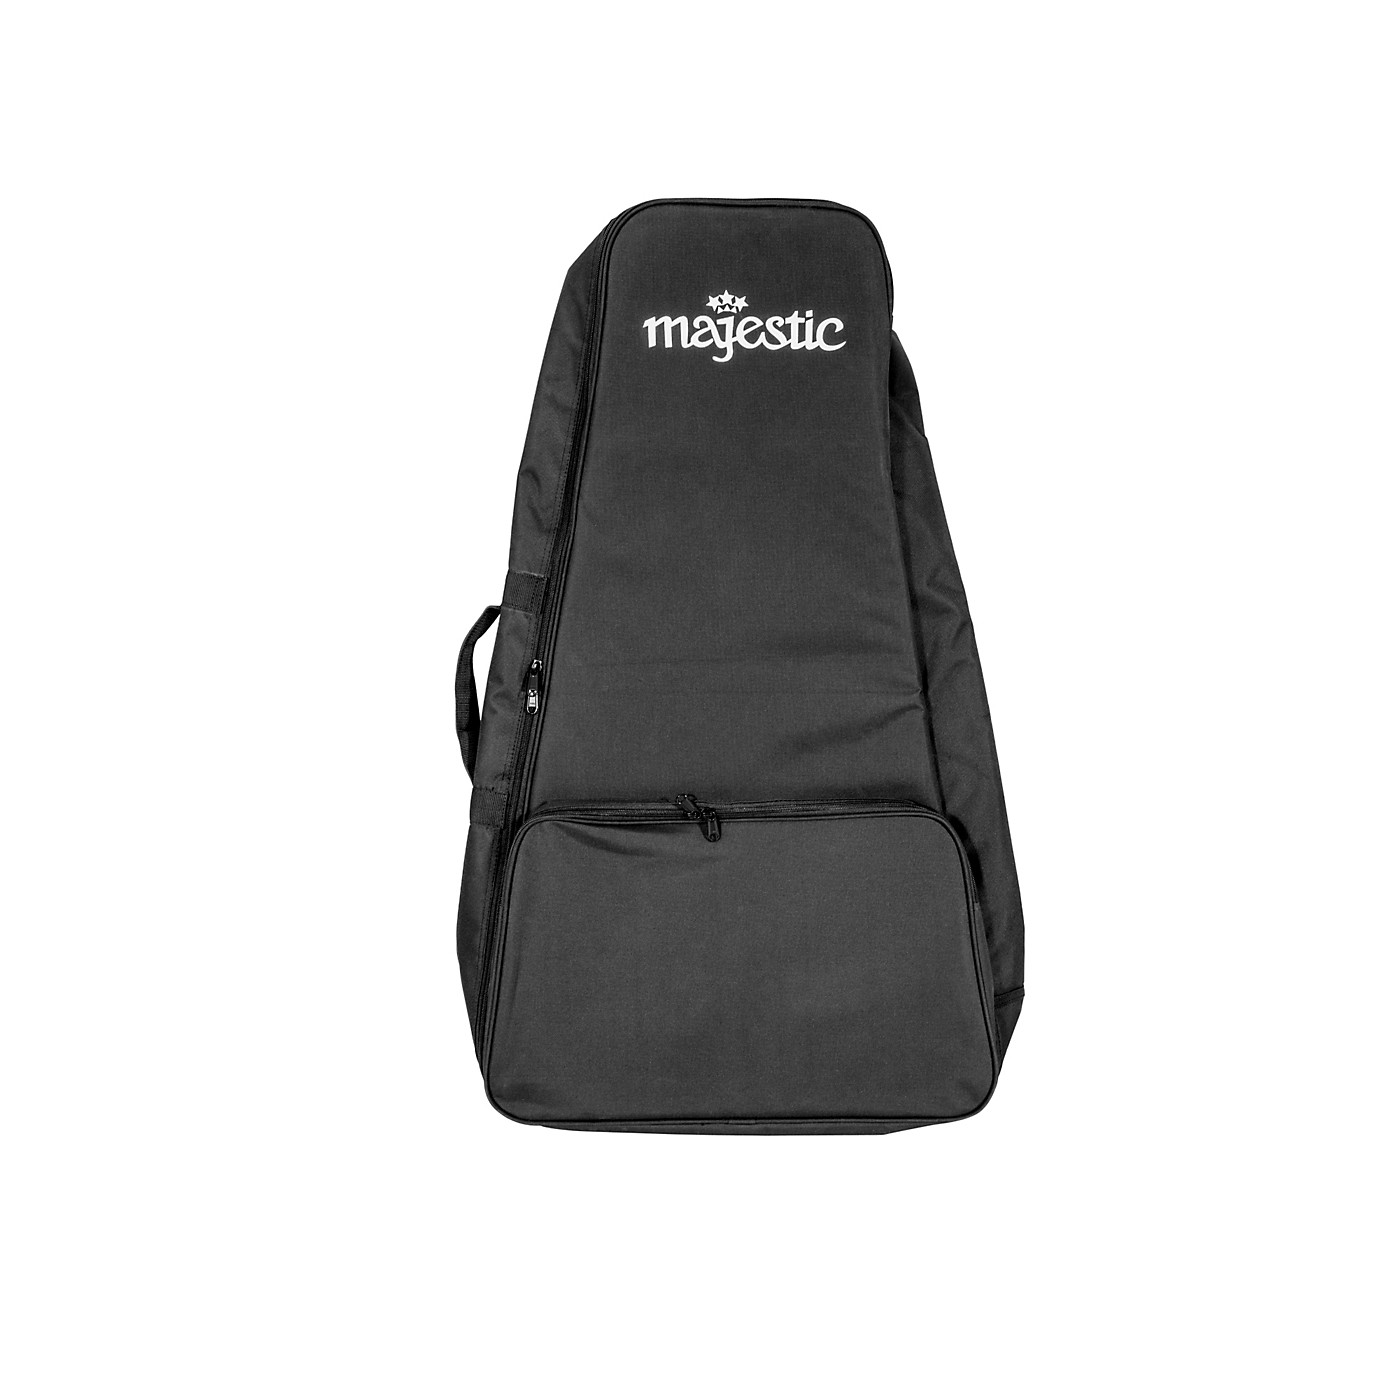 Majestic Carrying Bag for Gateway X4525D/X4525DR/X2525P/X2525PR Xylophones thumbnail